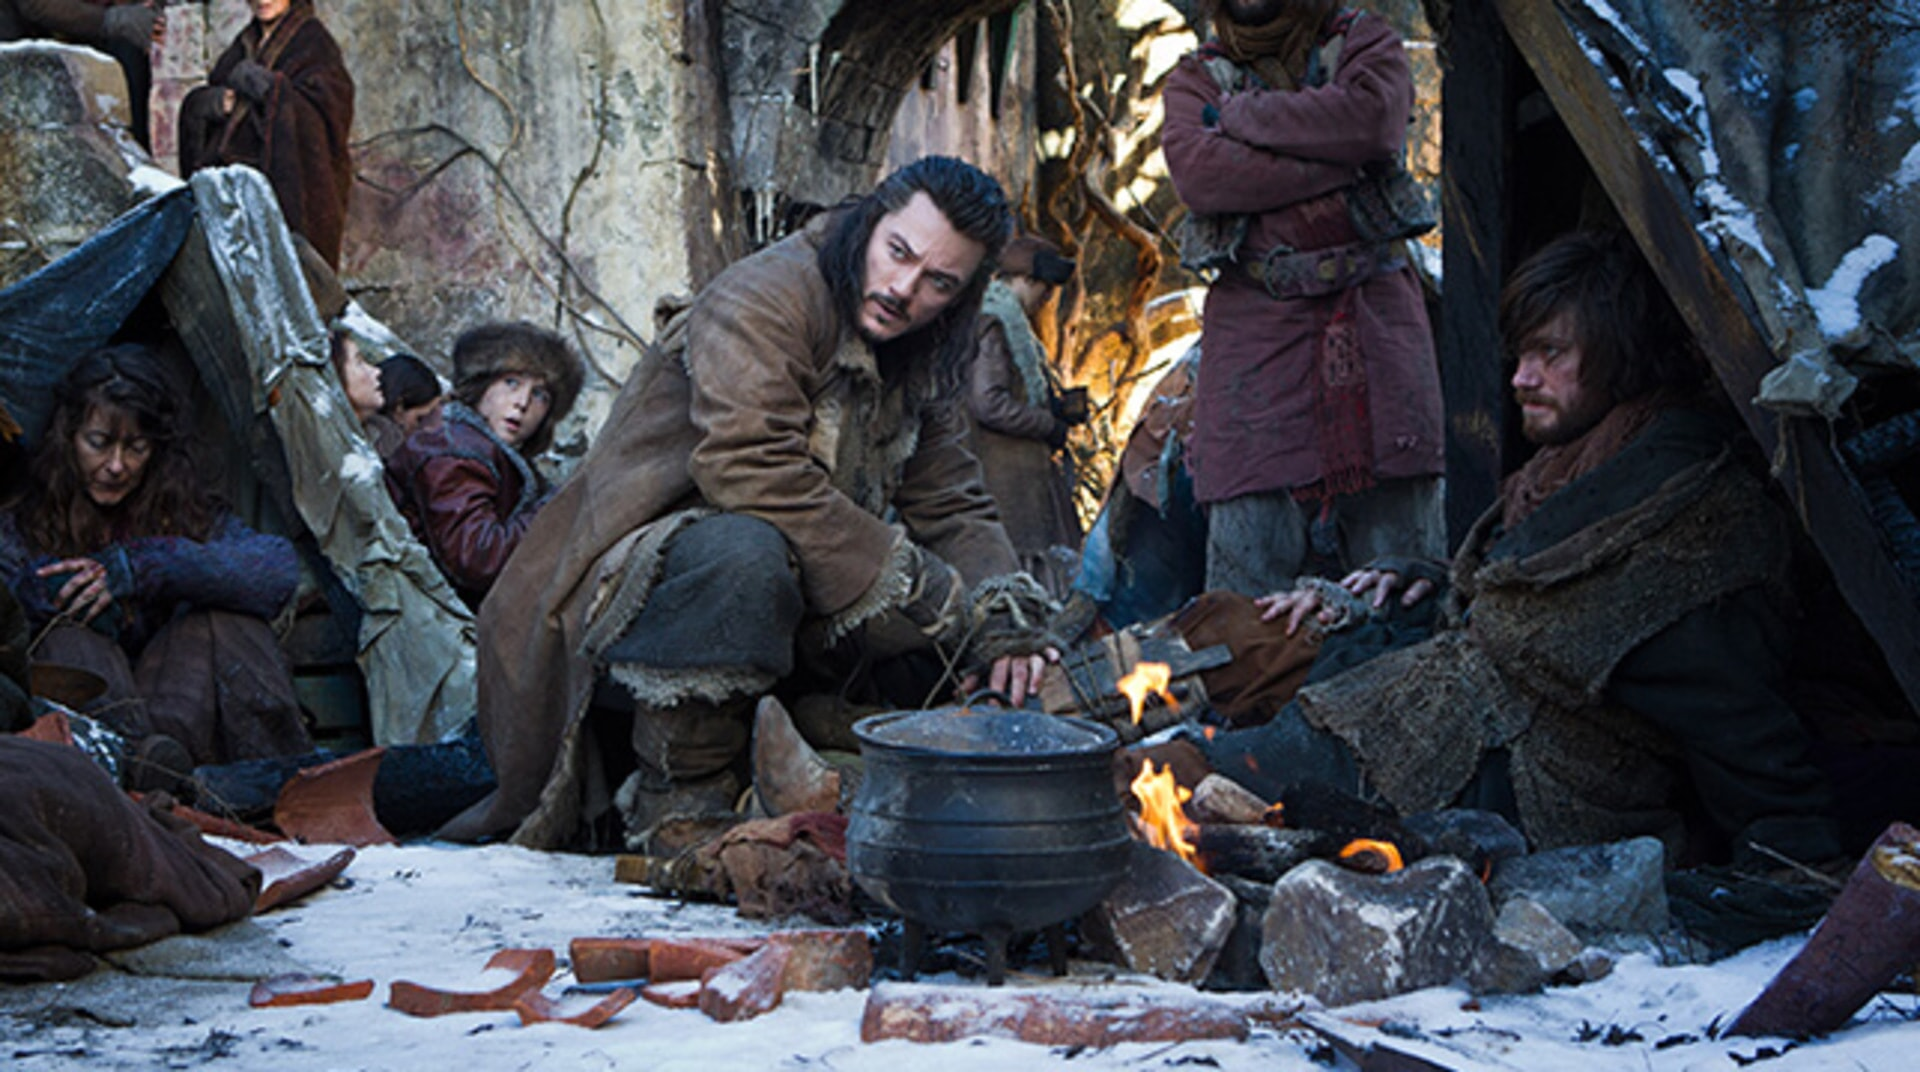 The Hobbit: The Battle of the Five Armies - Image 3